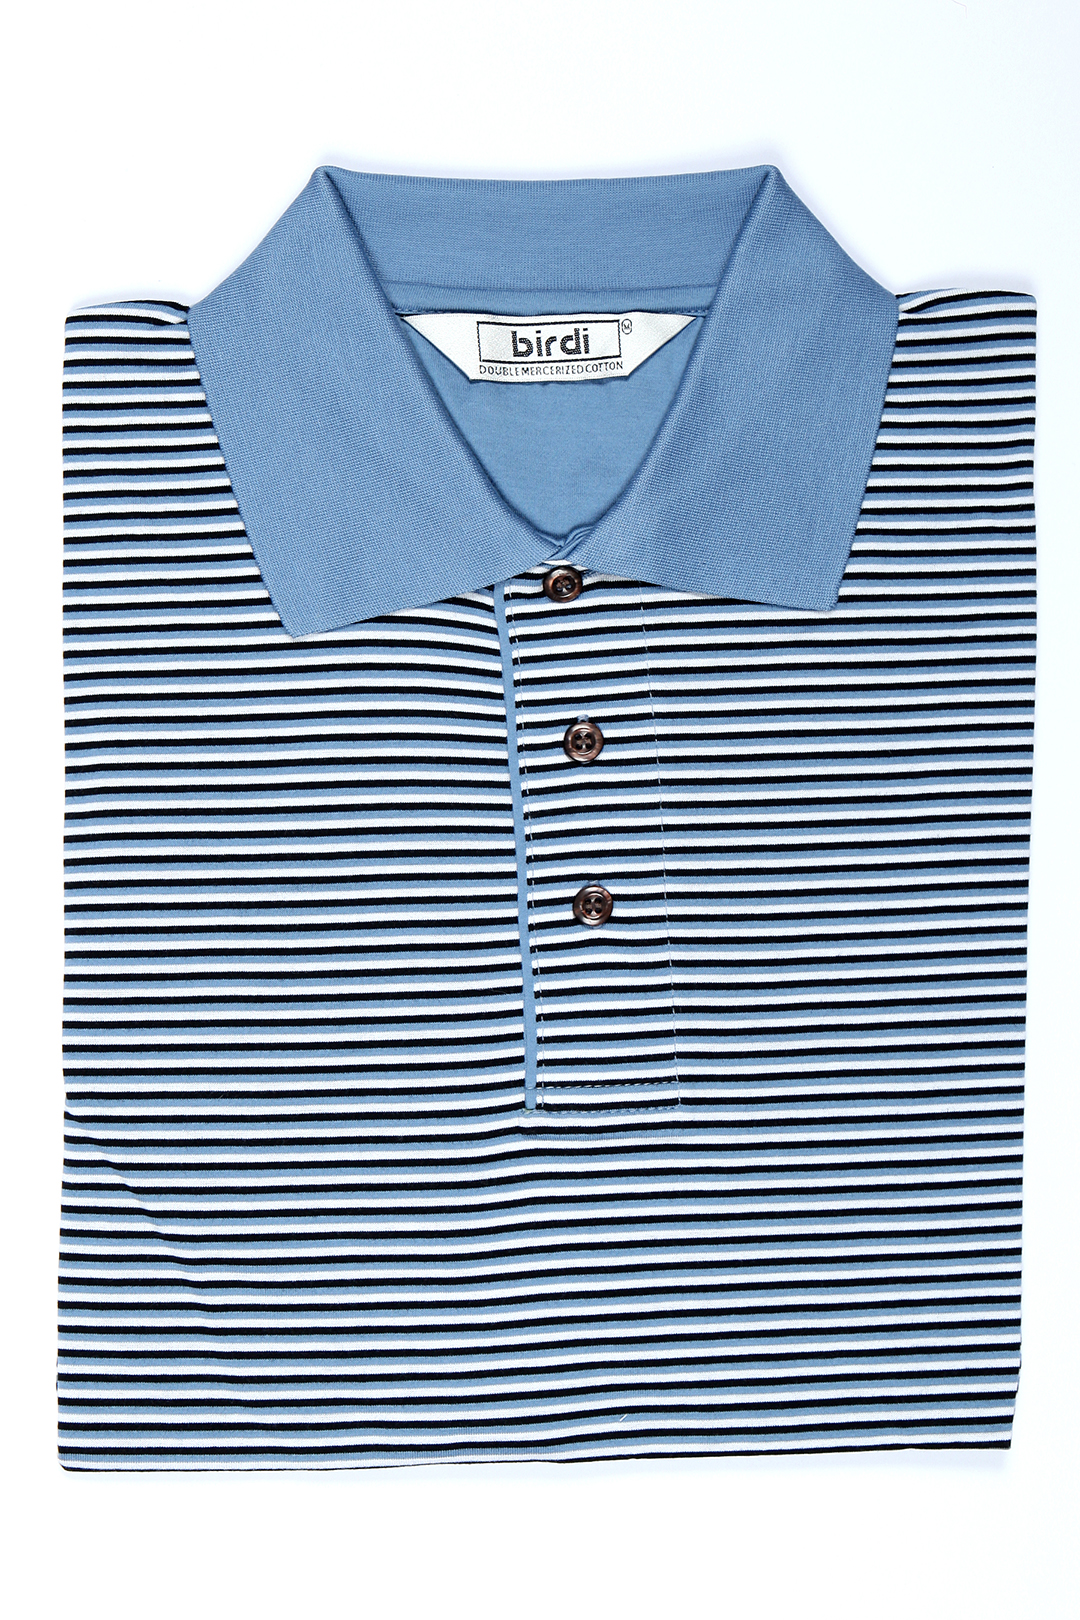 blue--black--white-men's-double-mercerized-golf-shirt